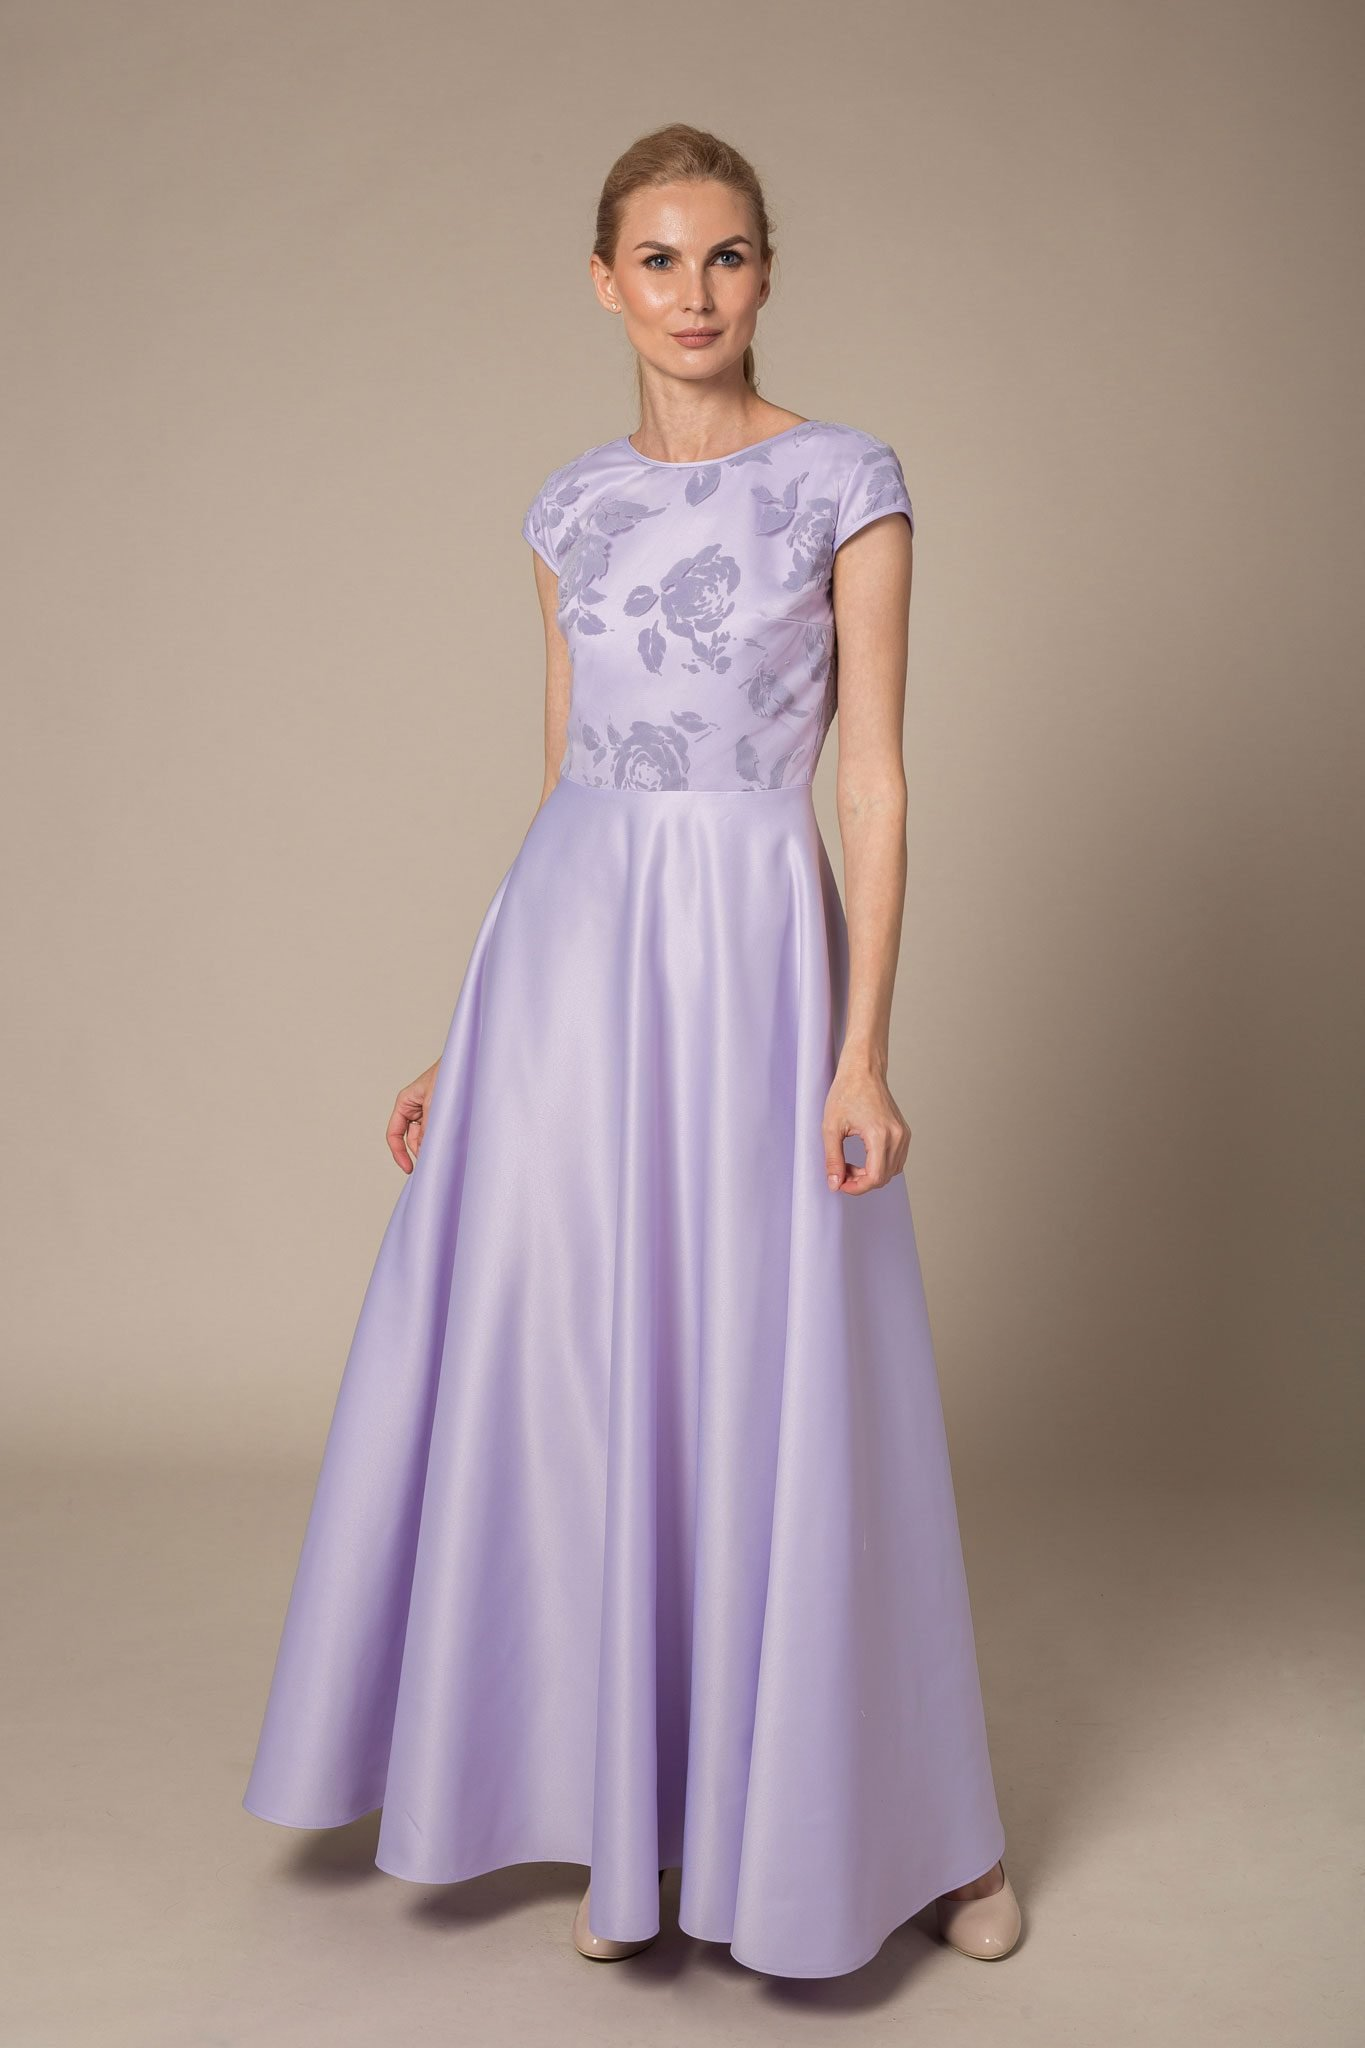 Lavender maxi dress with floral pattern